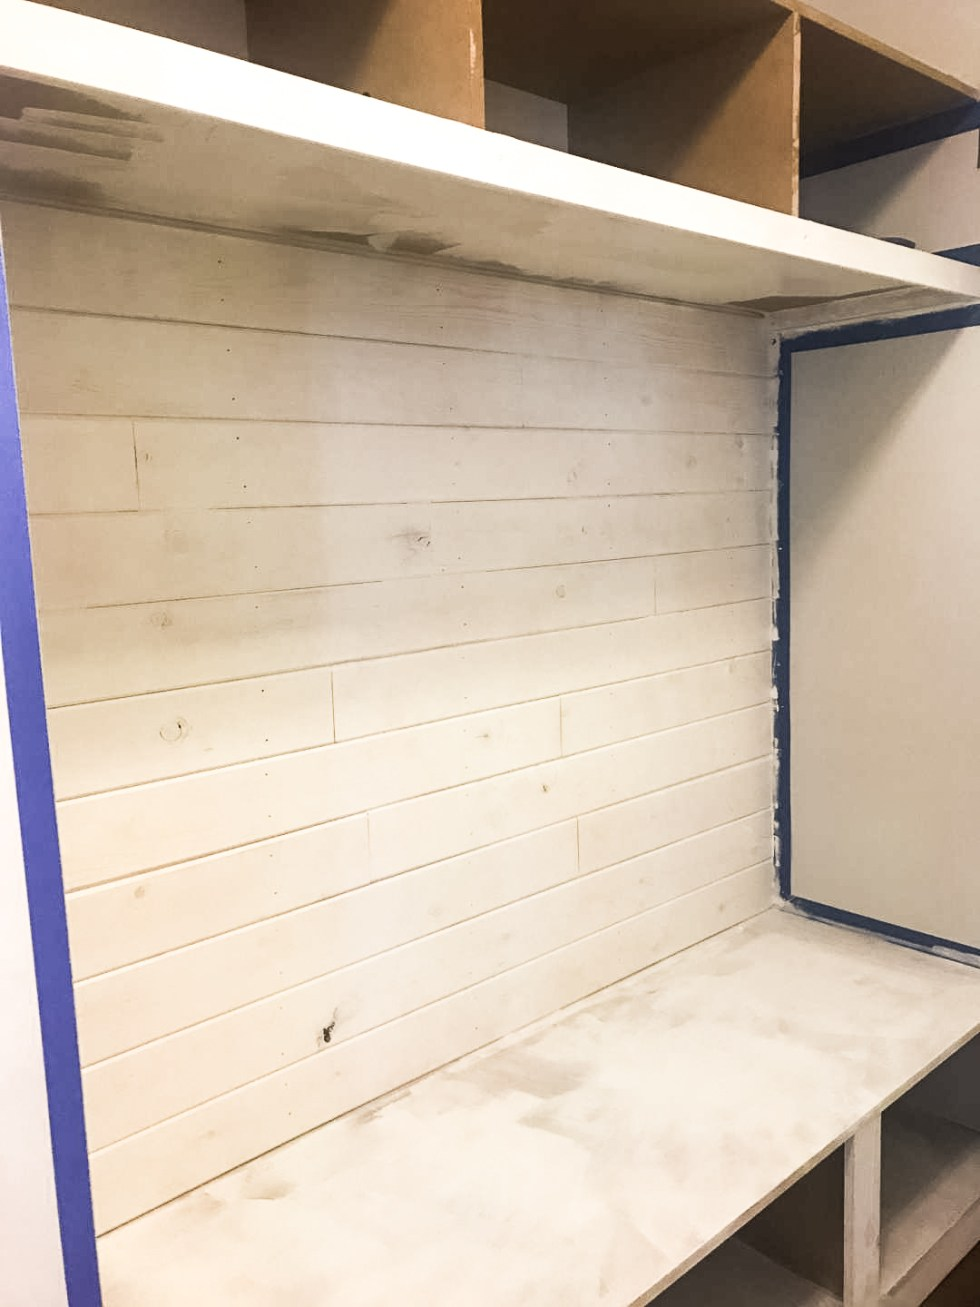 Excellent How To Install A Mudroom Bench With Shiplap Im Fixin To Caraccident5 Cool Chair Designs And Ideas Caraccident5Info